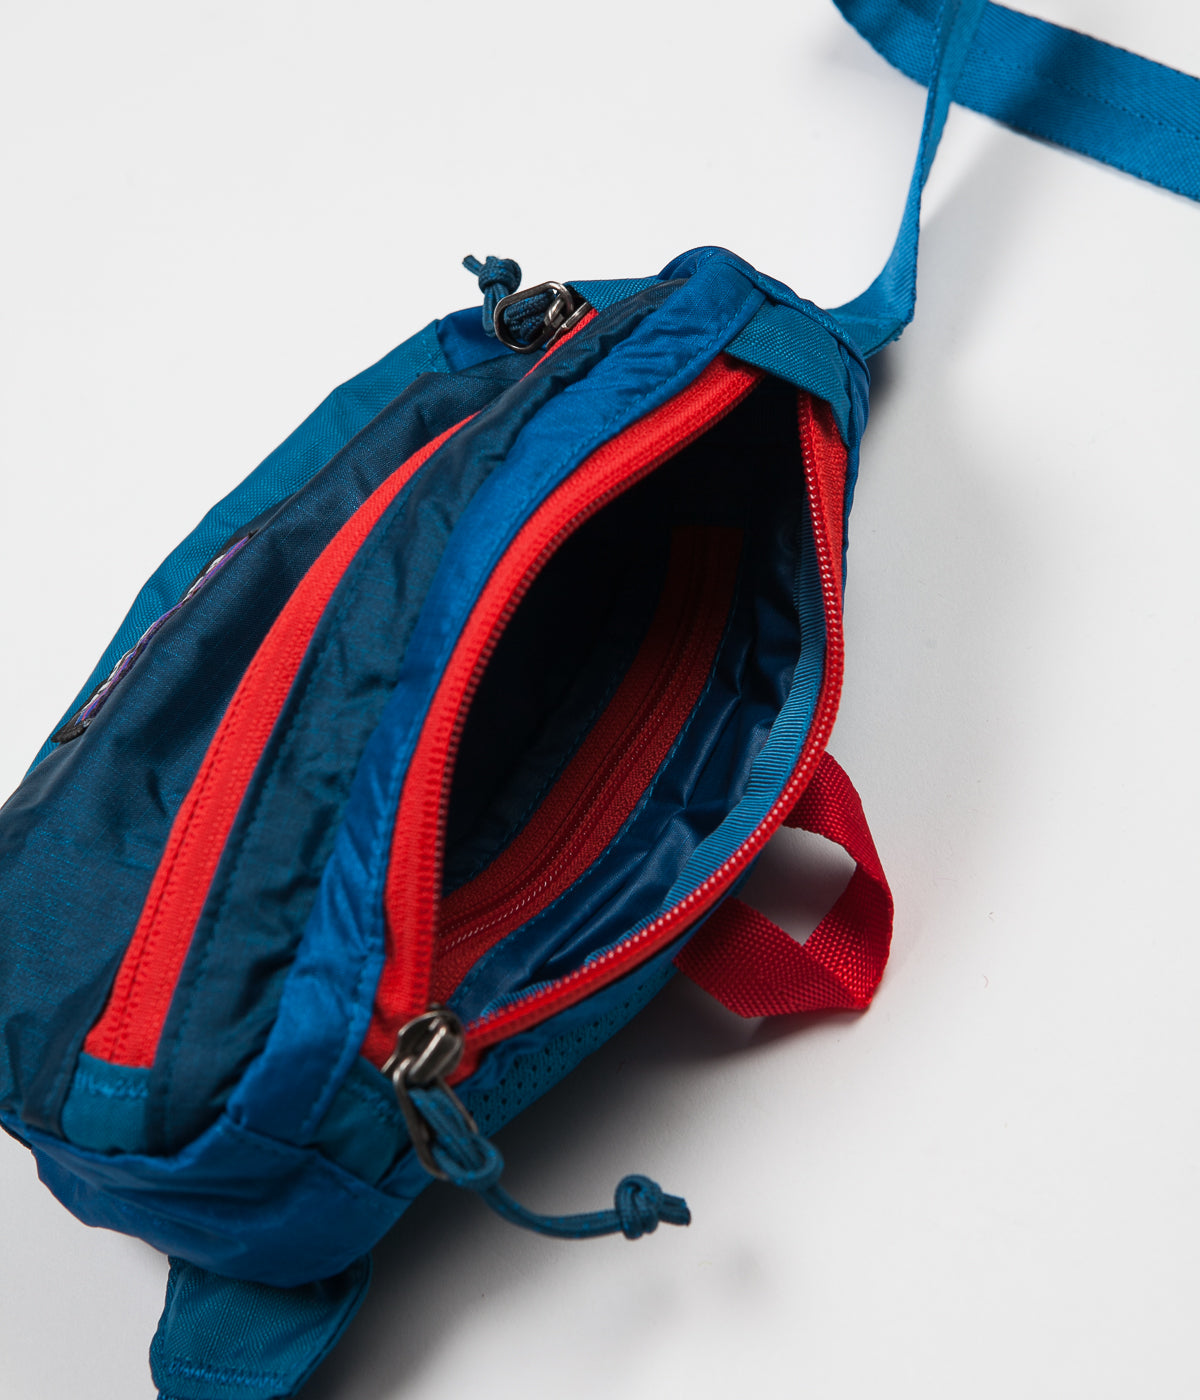 Patagonia Lightweight Travel Mini Hip Pack - Balkan Blue